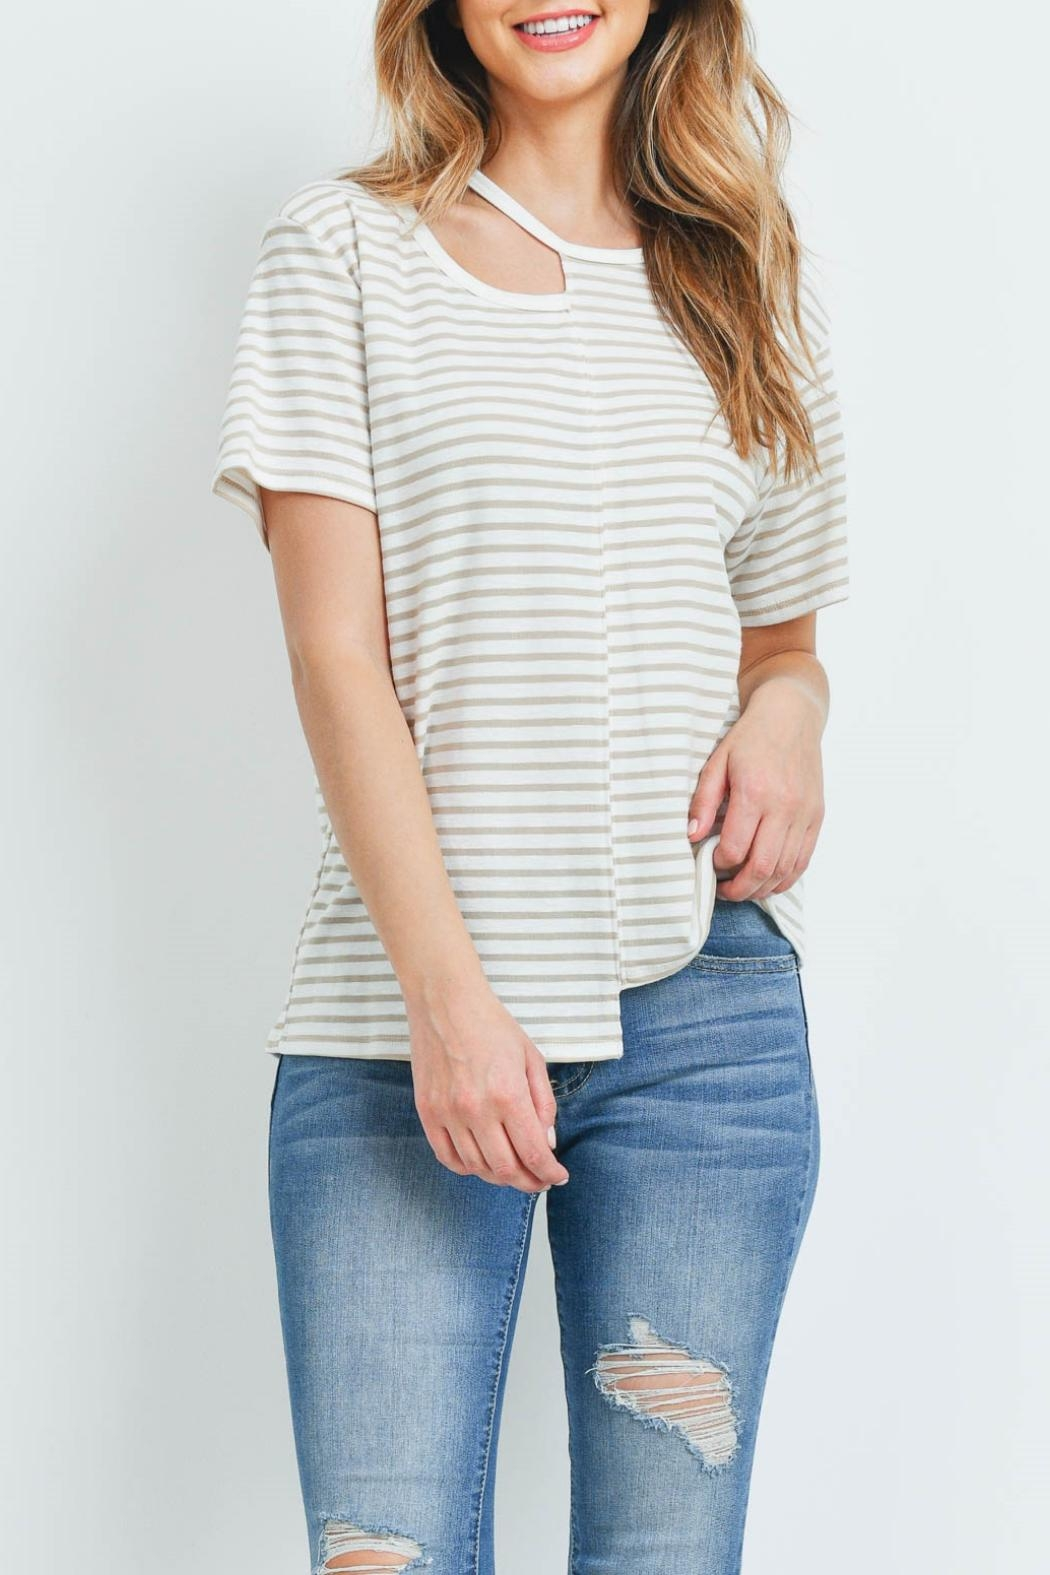 Jolie Ivory Taupe-Striped Top - Main Image